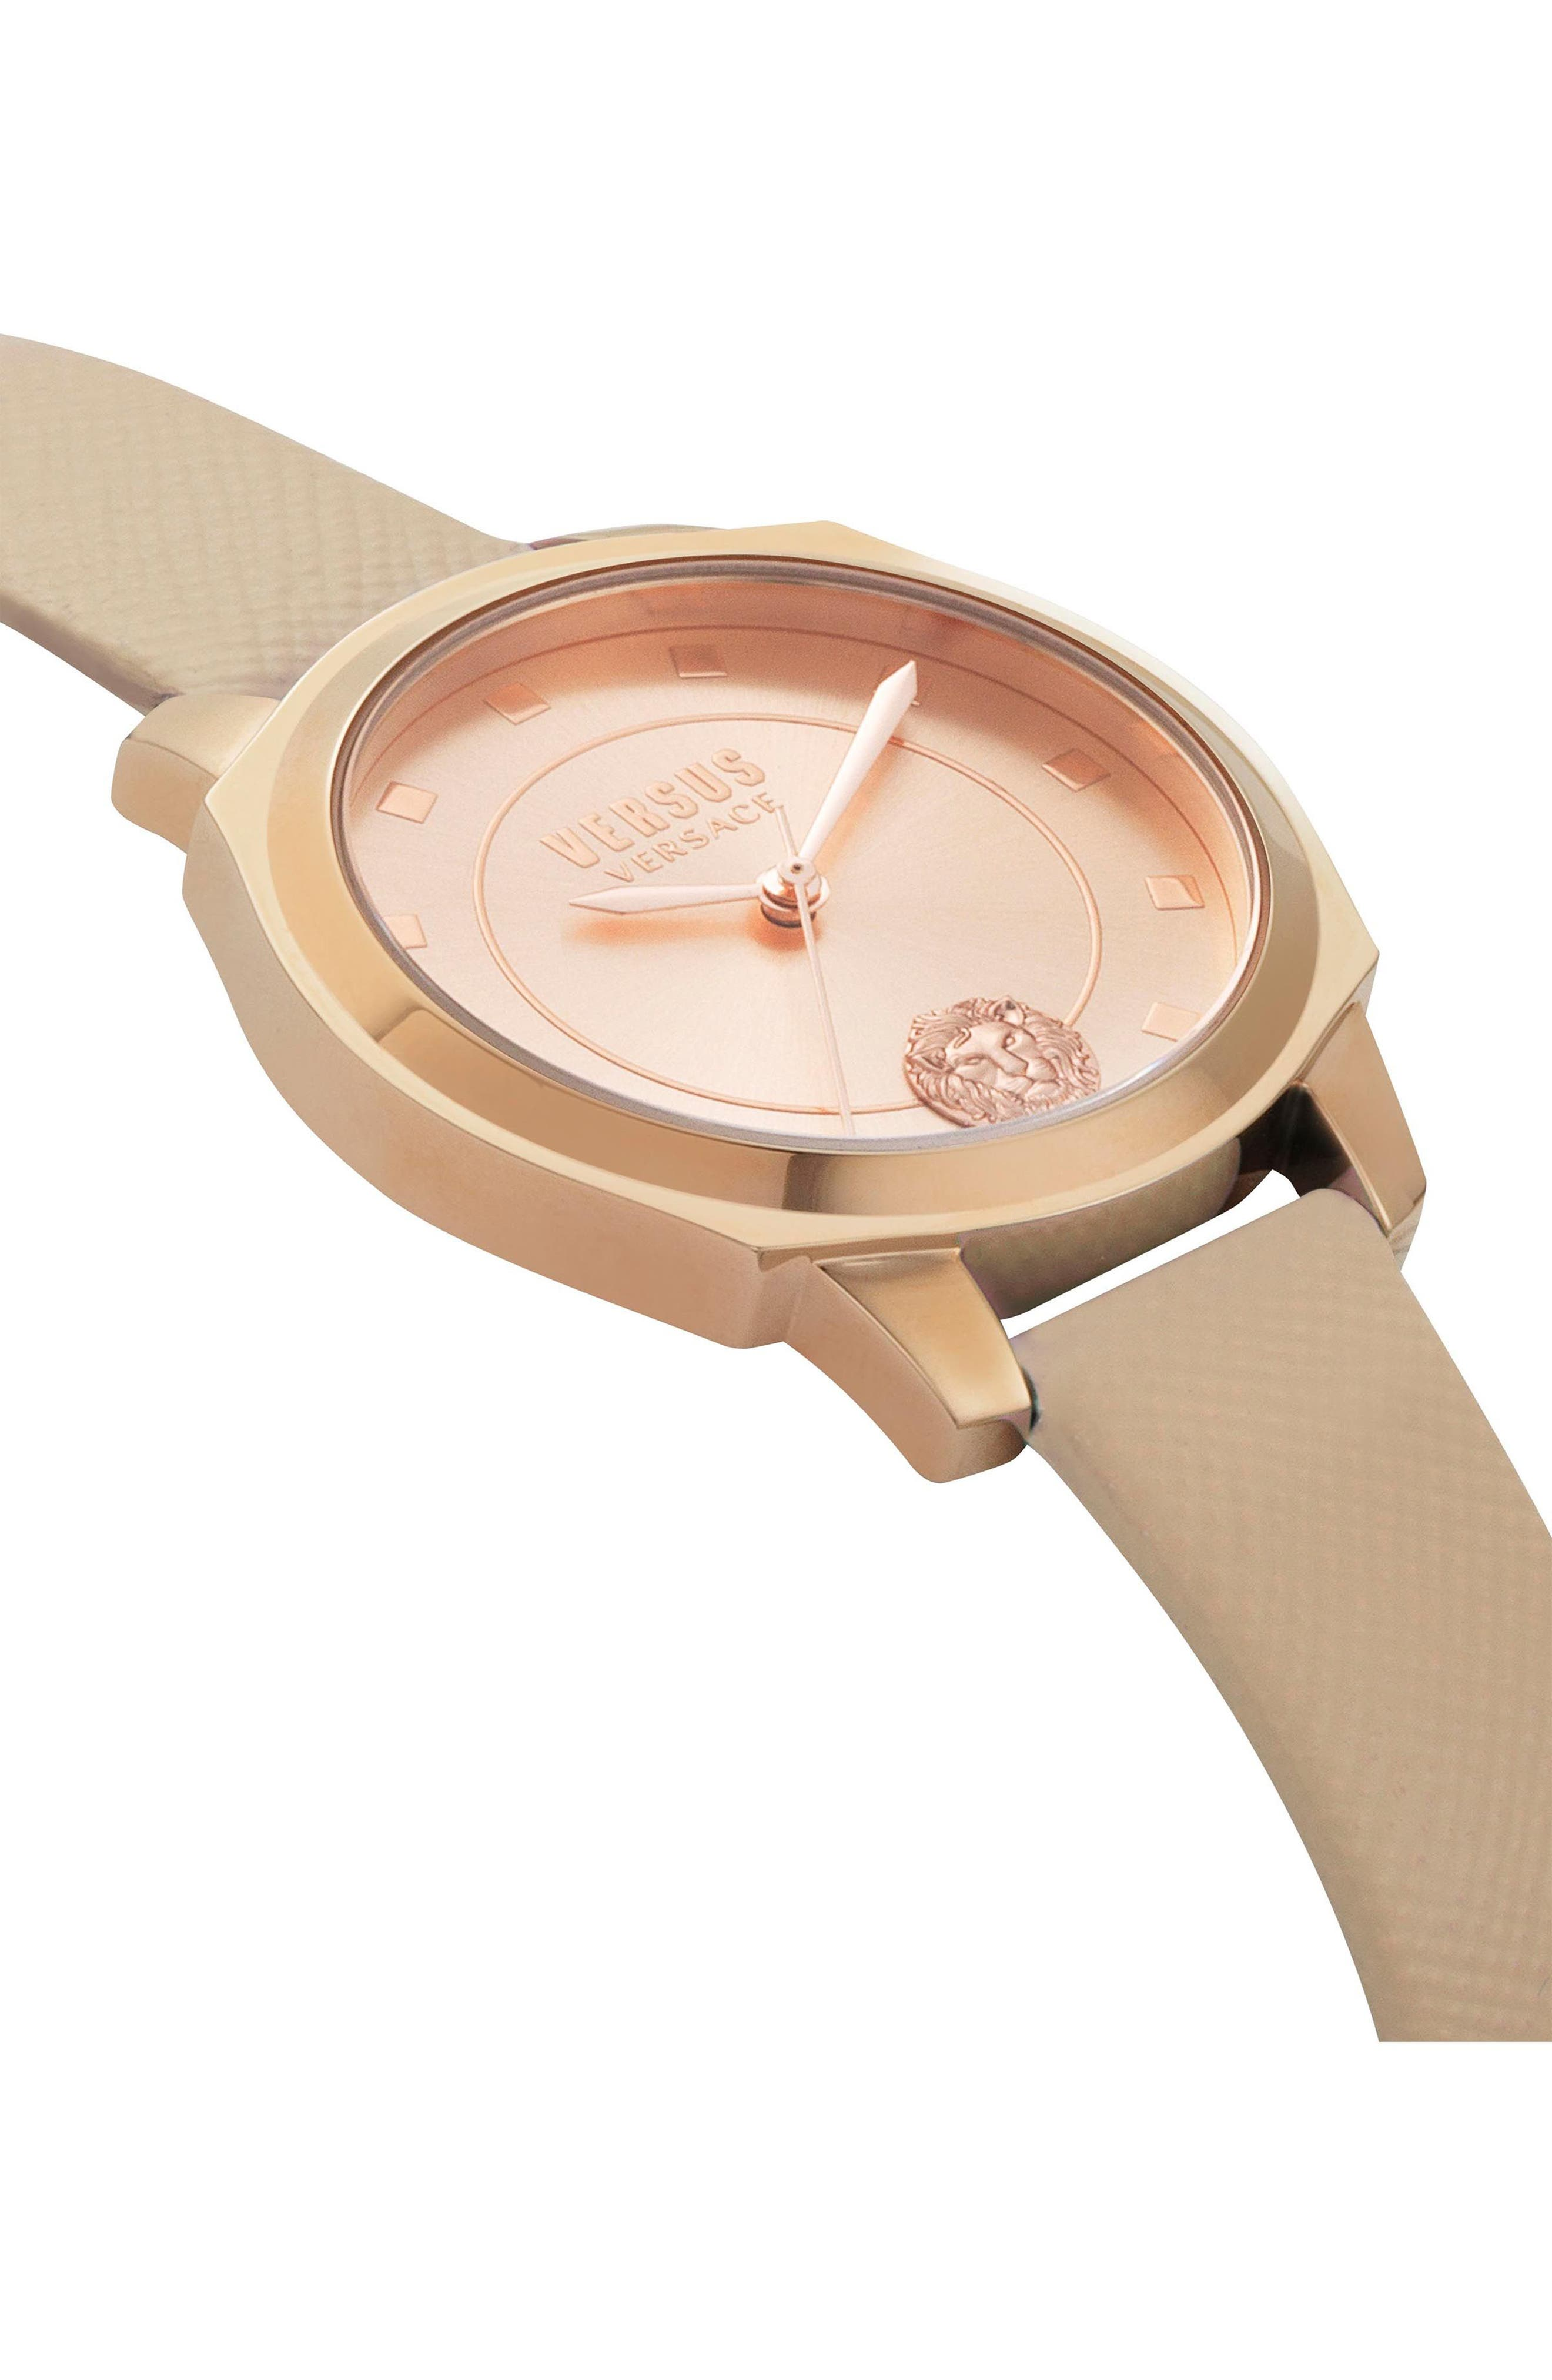 VERSUS by Versace Chelsea Leather Strap Watch, 34mm,                             Alternate thumbnail 3, color,                             Tan/ Rose Gold